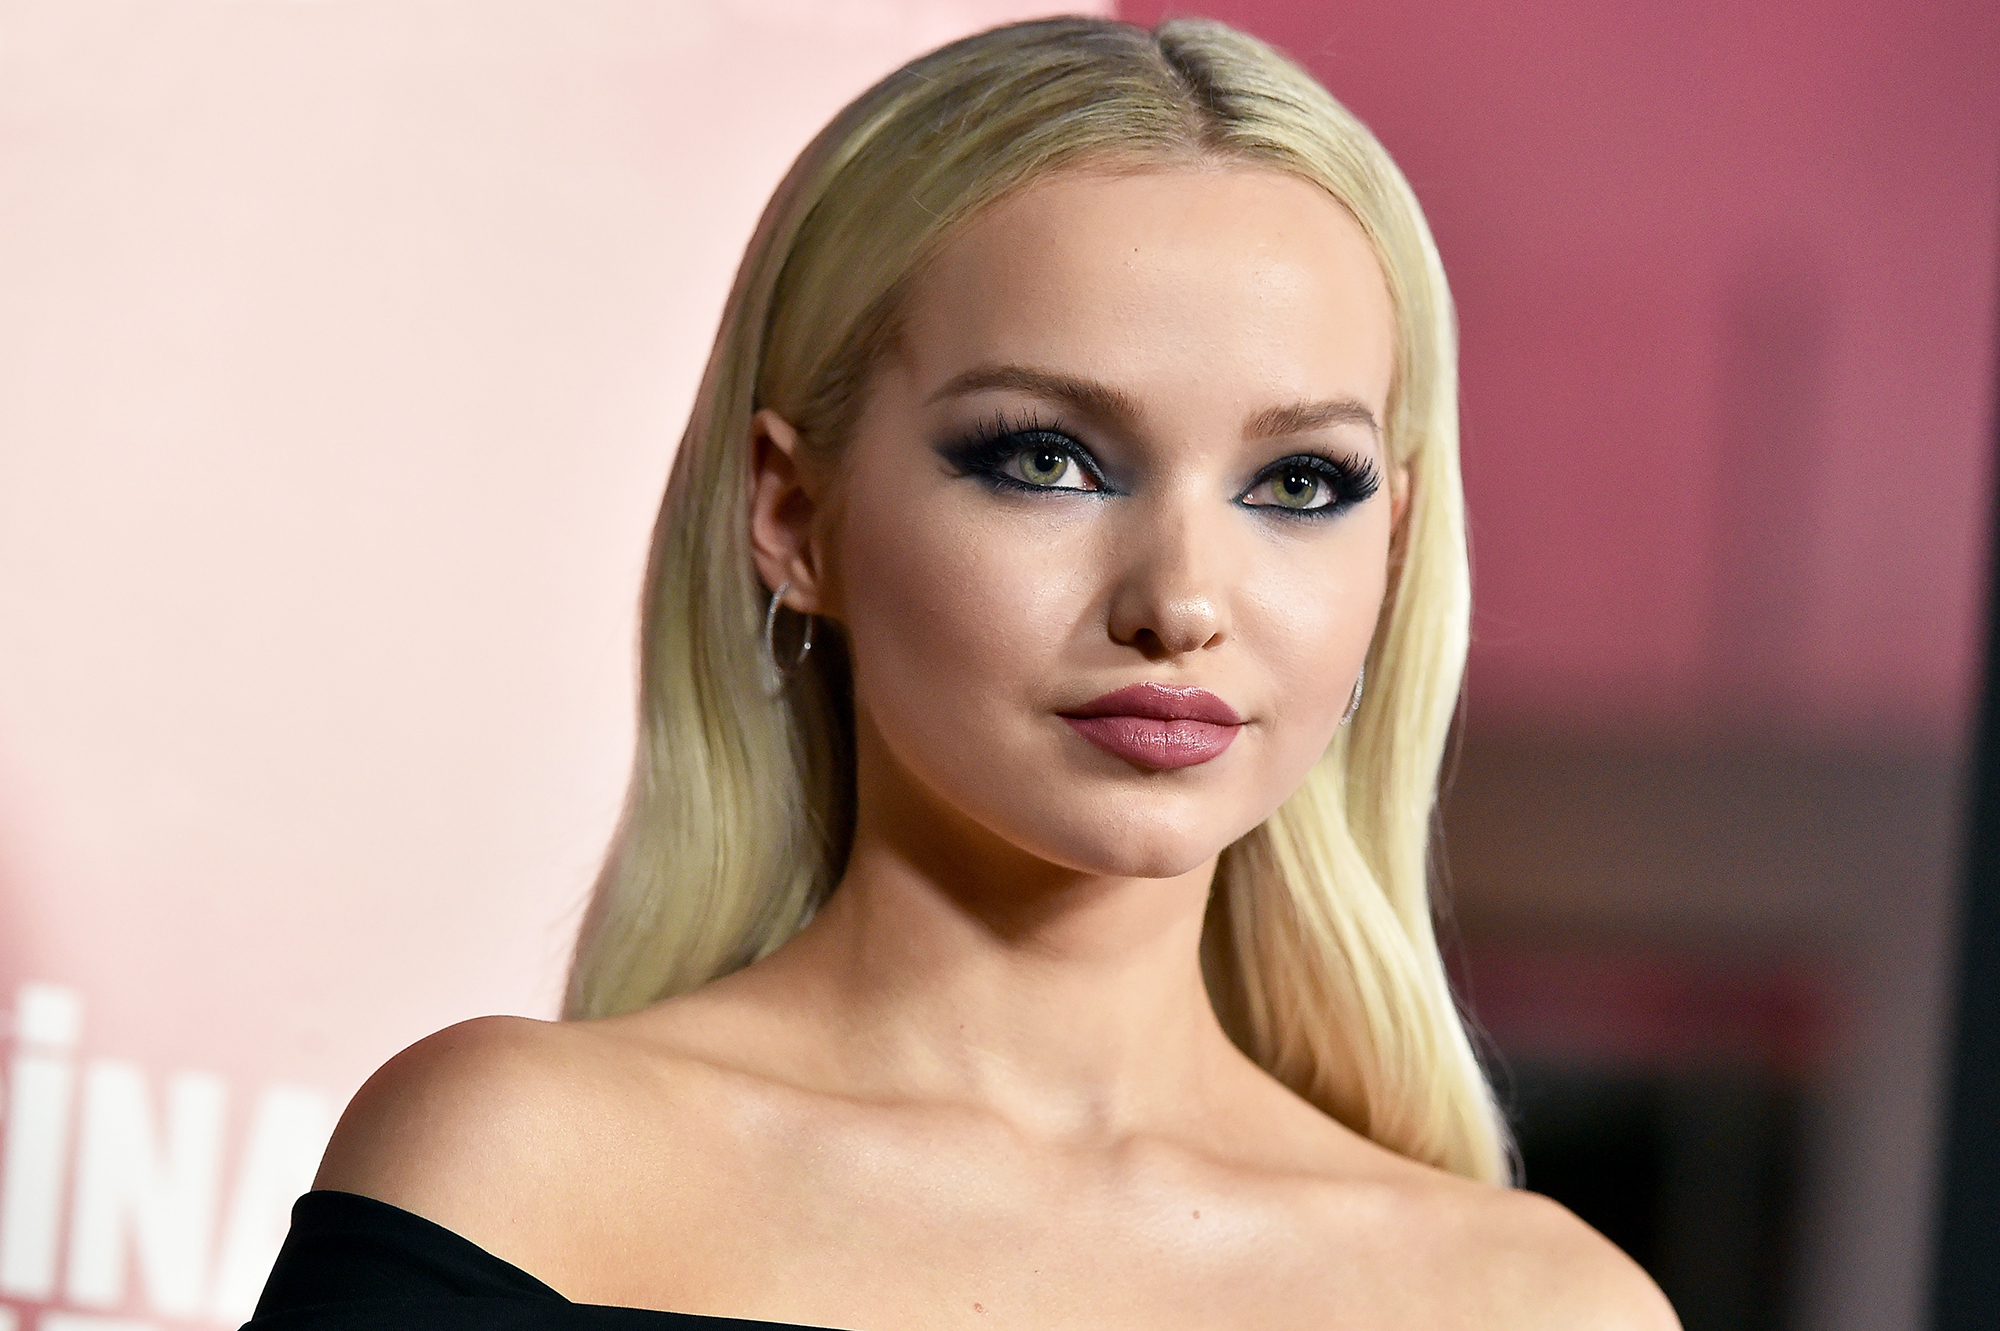 Dove Cameron Hot Blonde Pics - Dove Cameron Net Worth, Pics, Wallpapers, Career and Biography